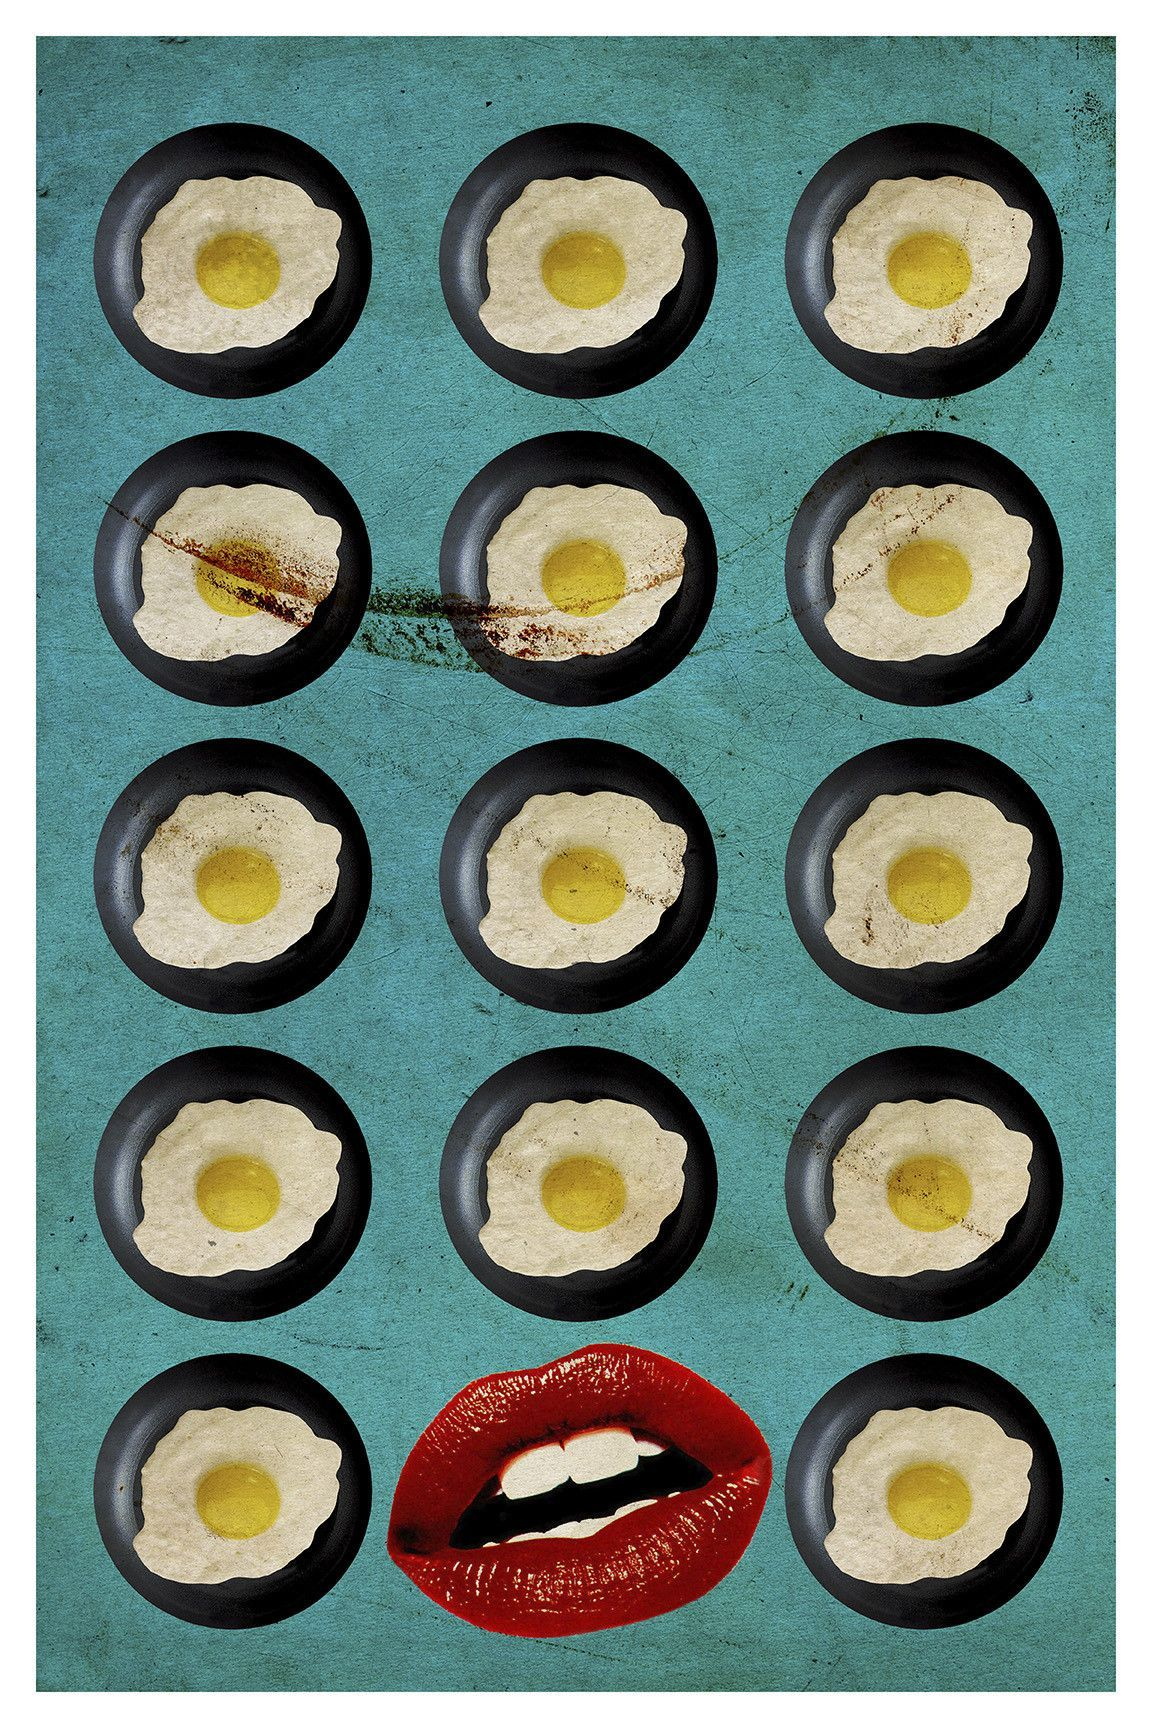 One Egg A Day by Elo Marc Graphic Art | Products | Pinterest | Art ...